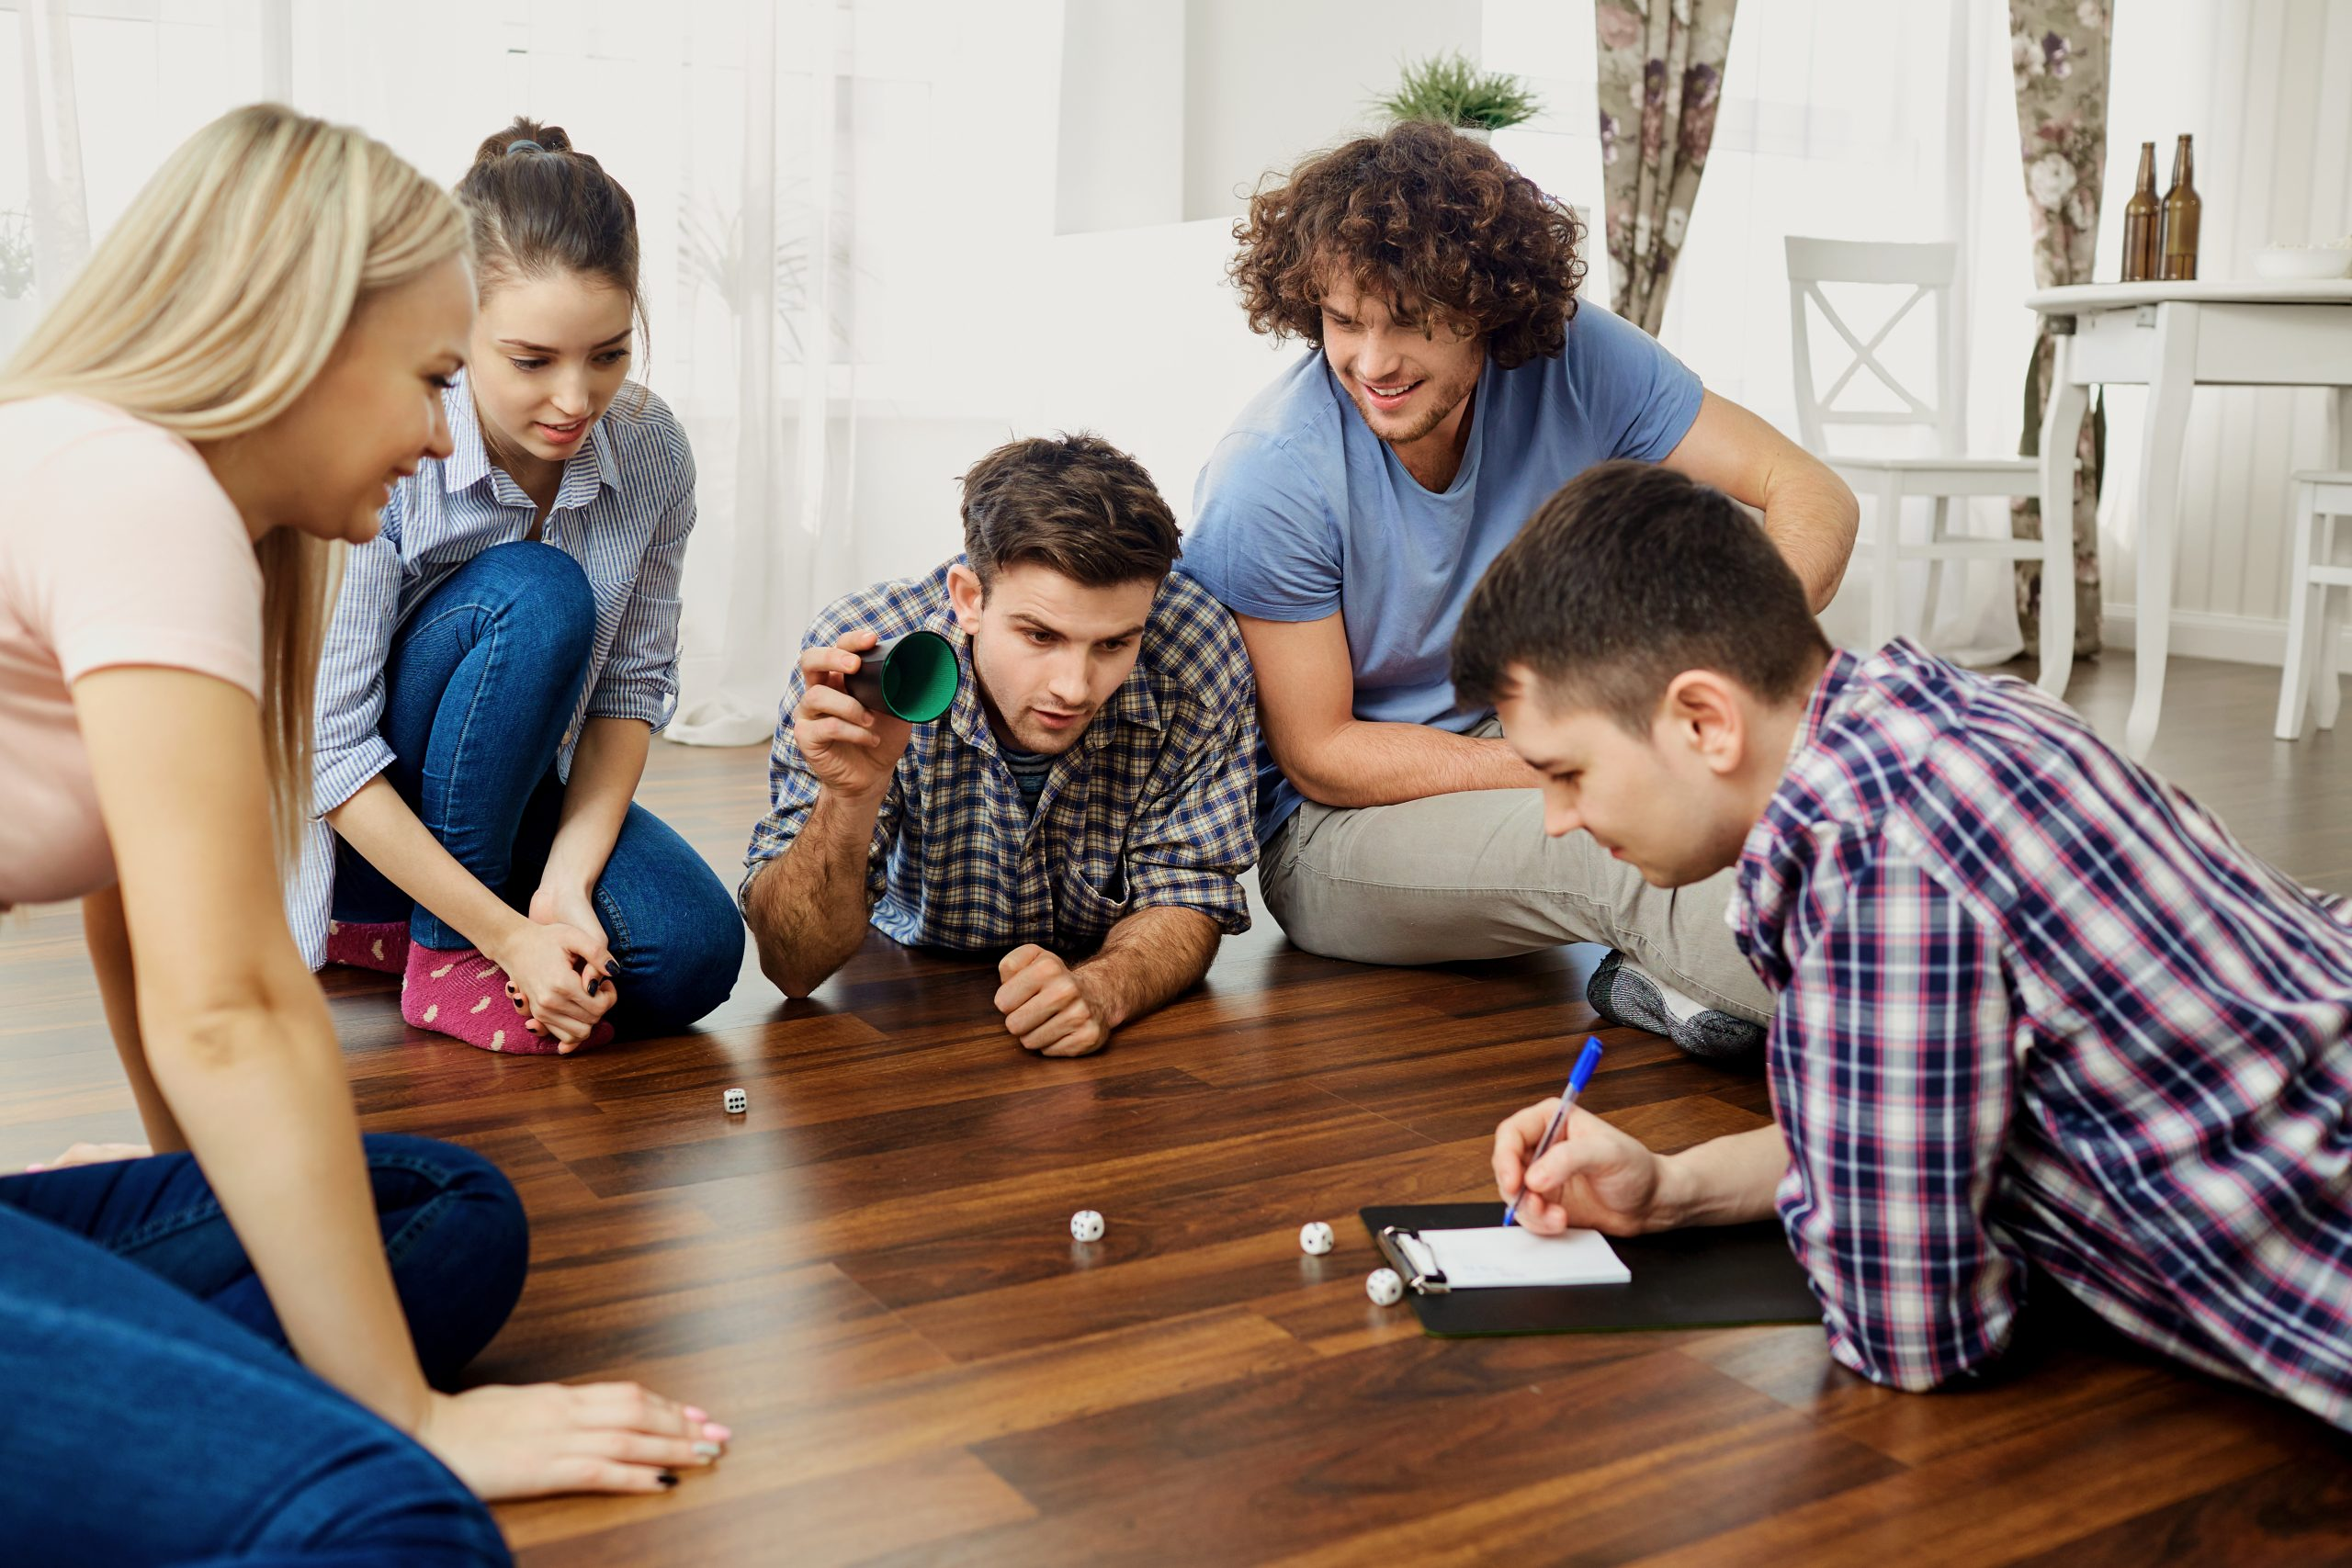 Group of friends playing a dice game